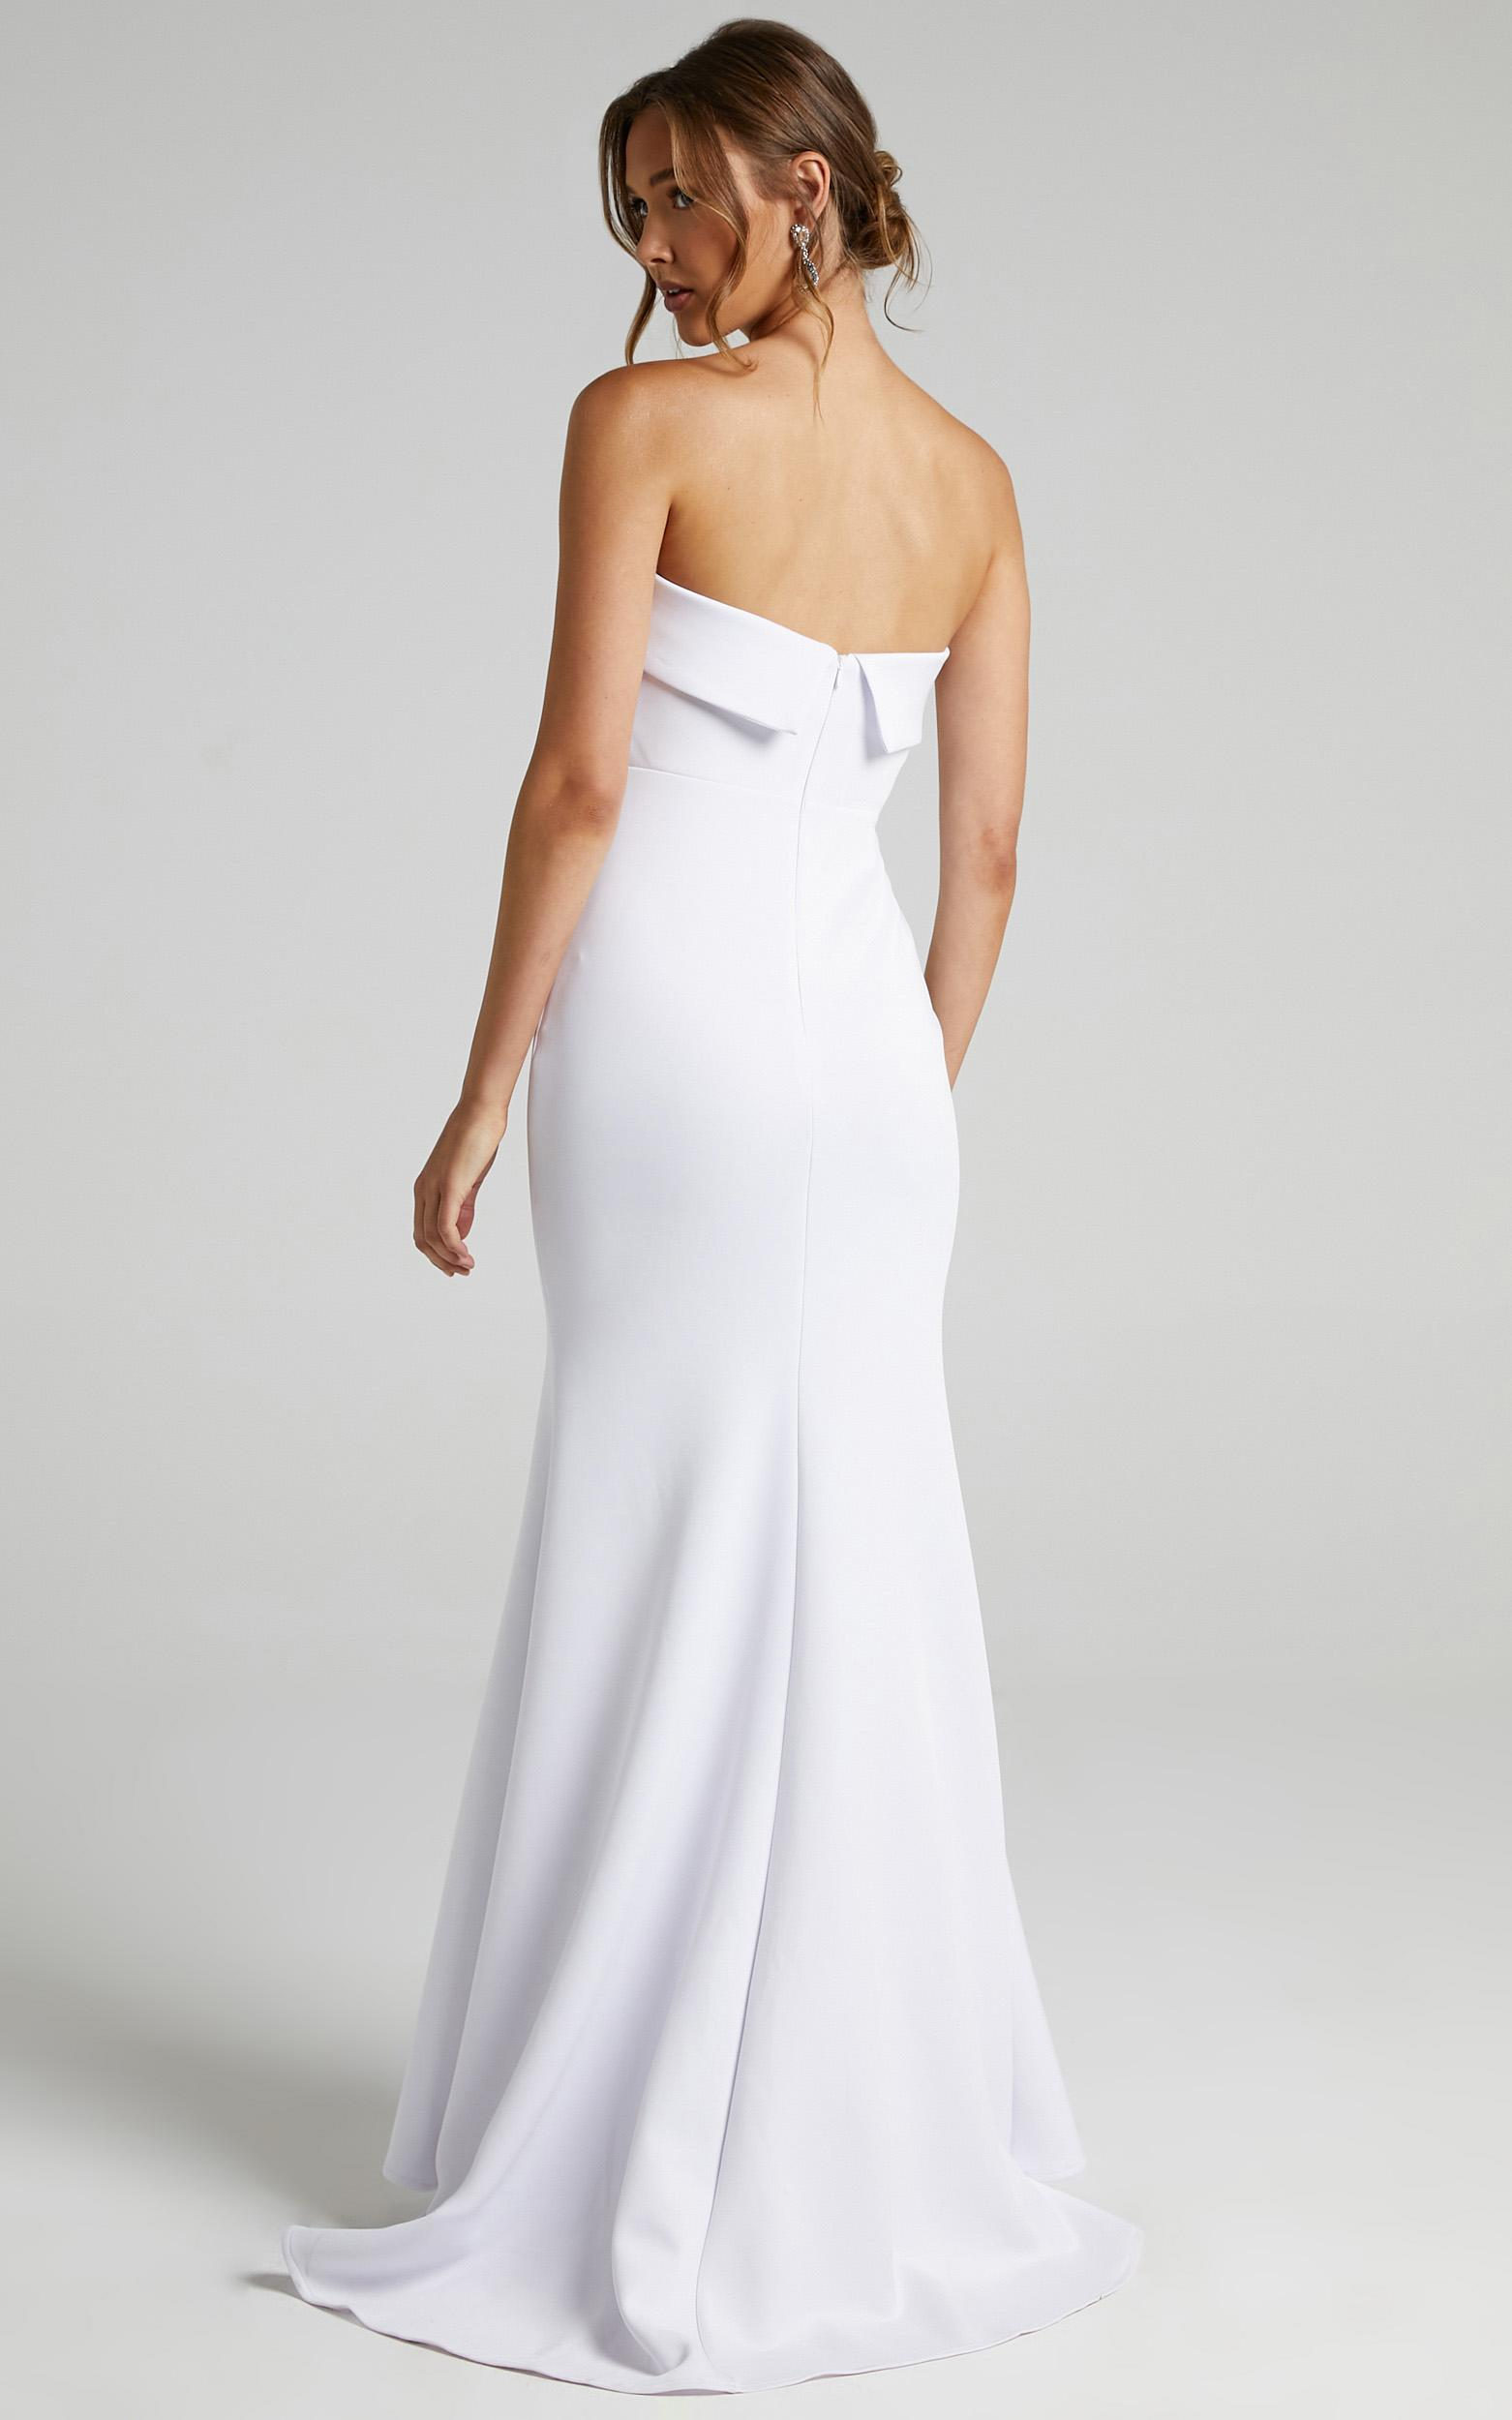 Love Me So Gown in White - 06, WHT1, hi-res image number null